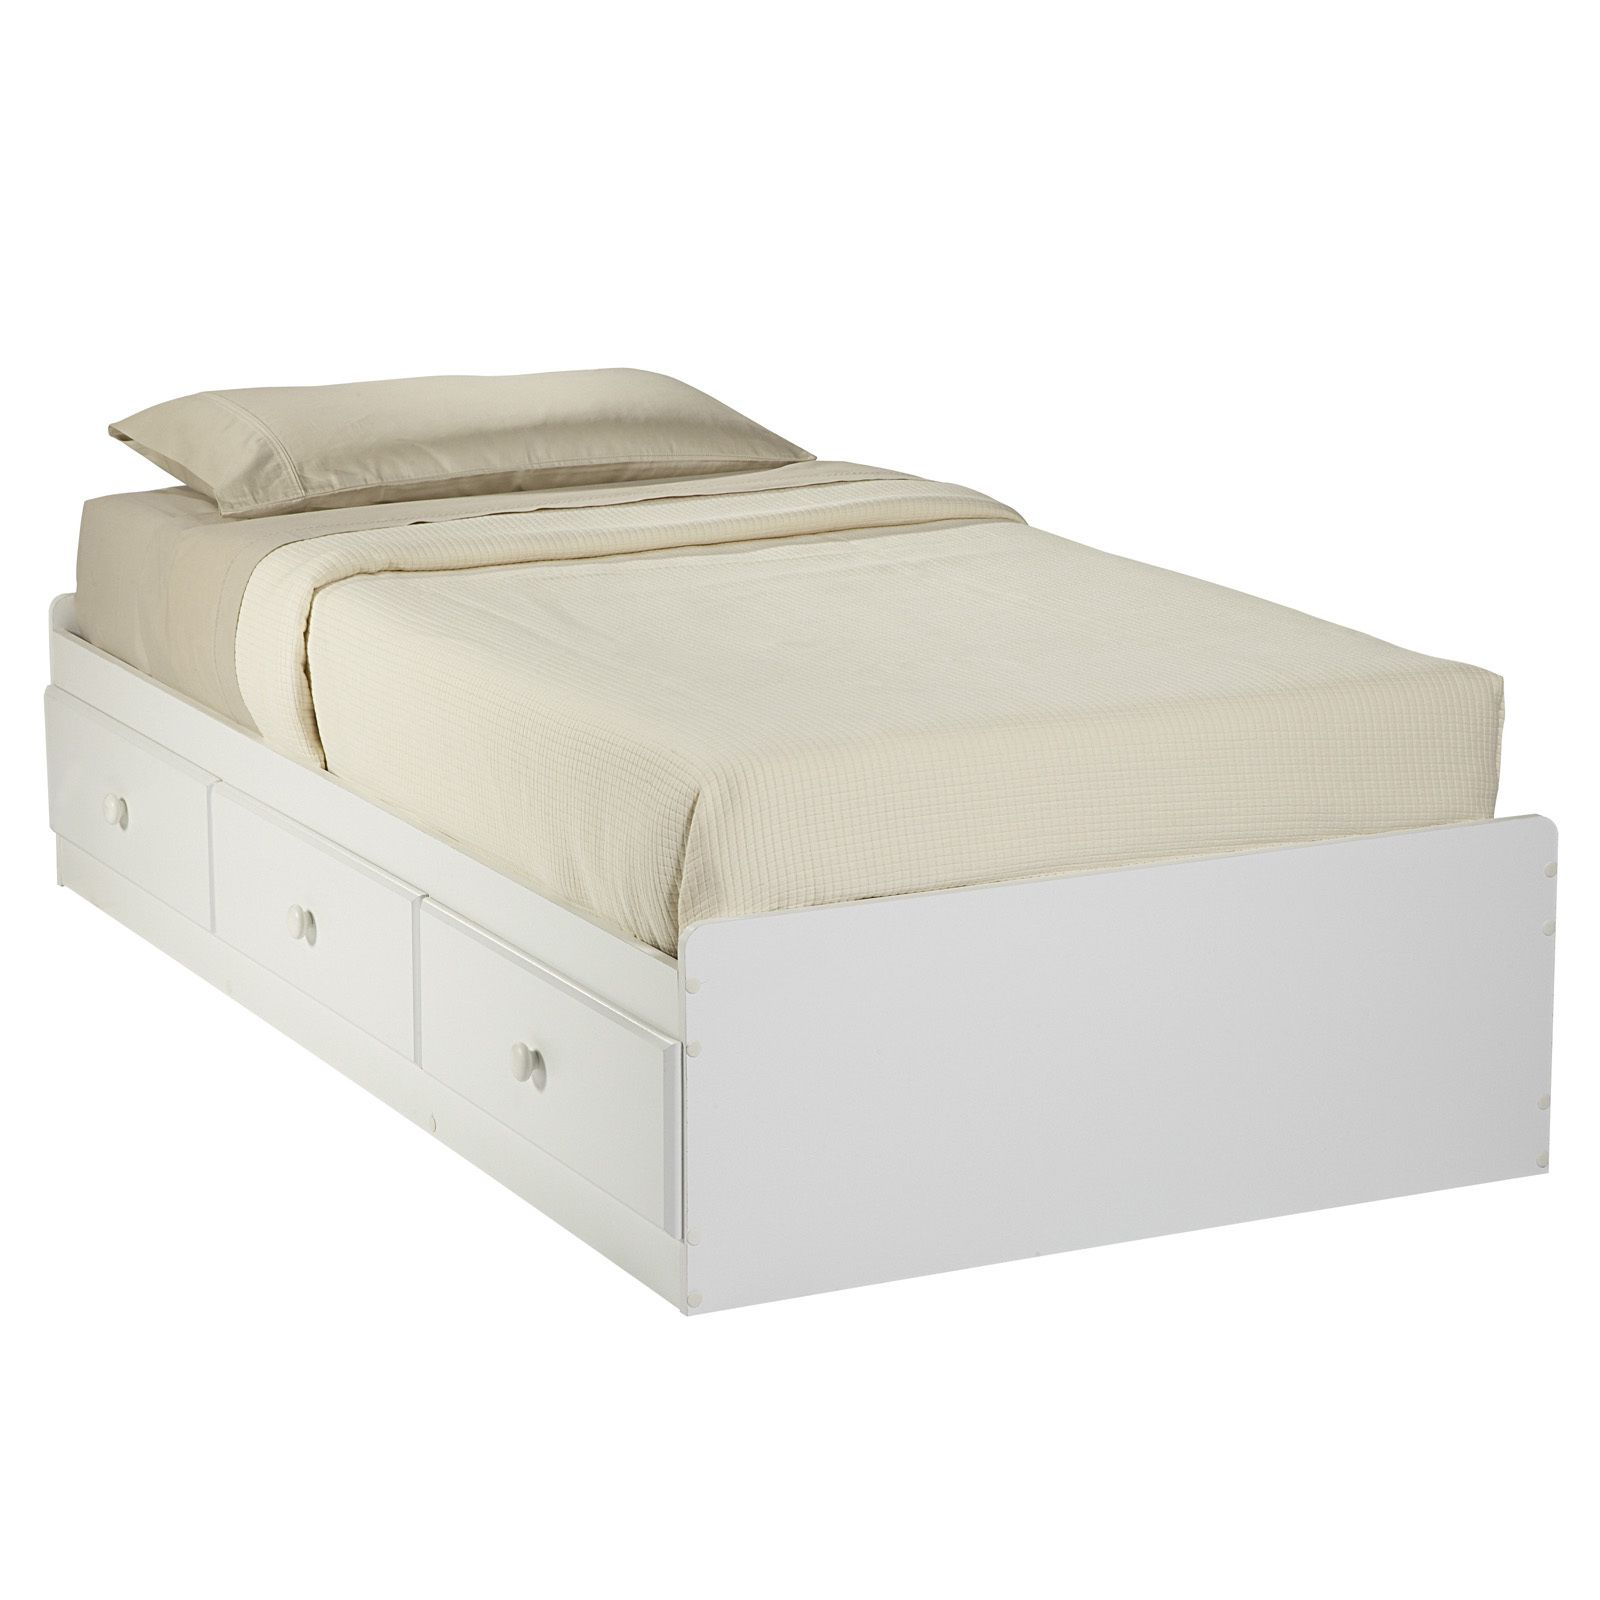 This is it. This bed has three large storage drawers for